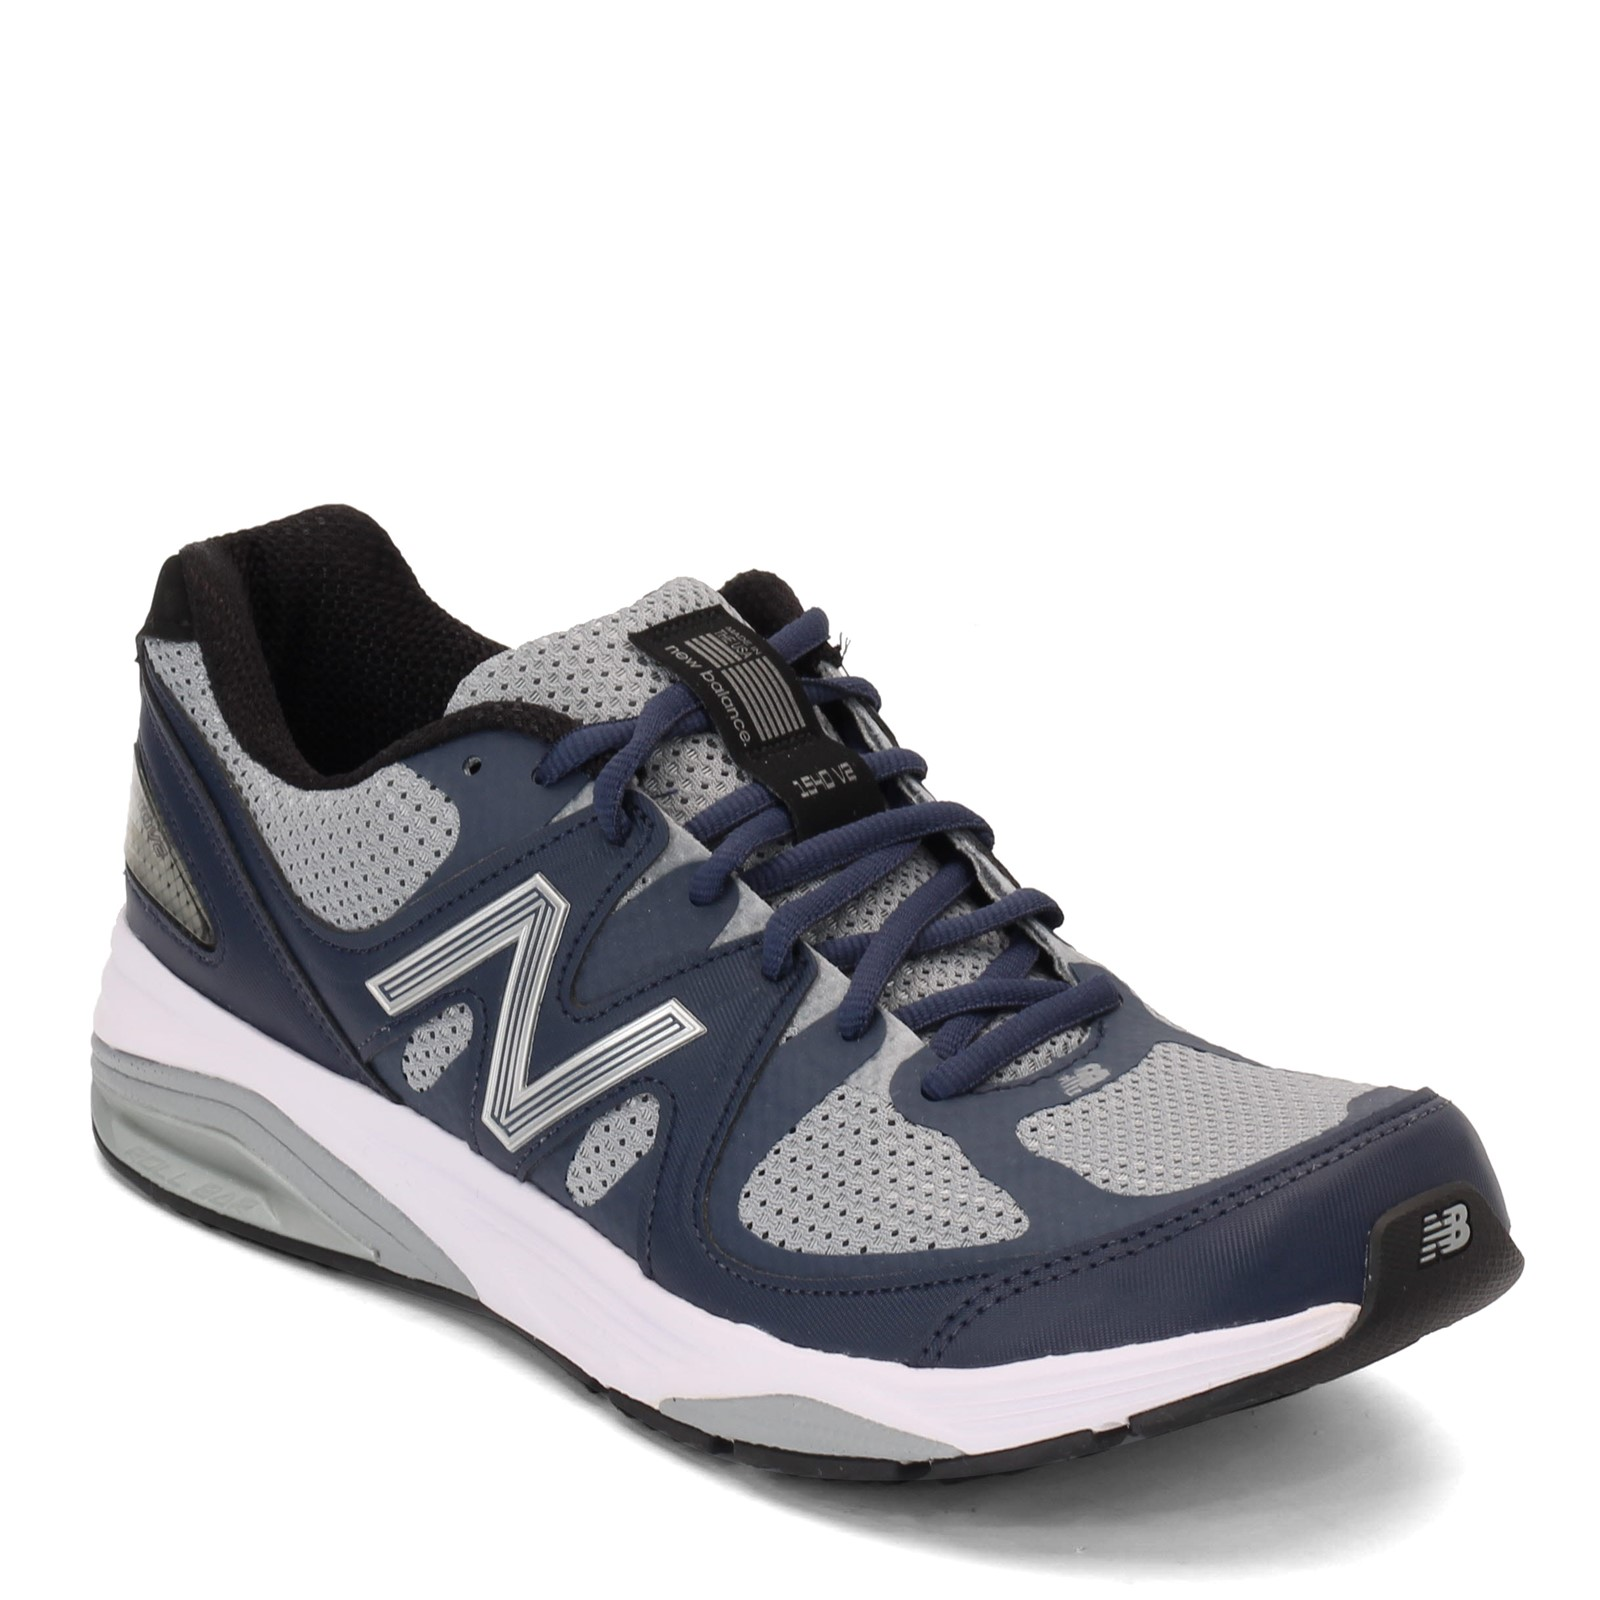 Men's New Balance, 1540V2 Running Sneaker